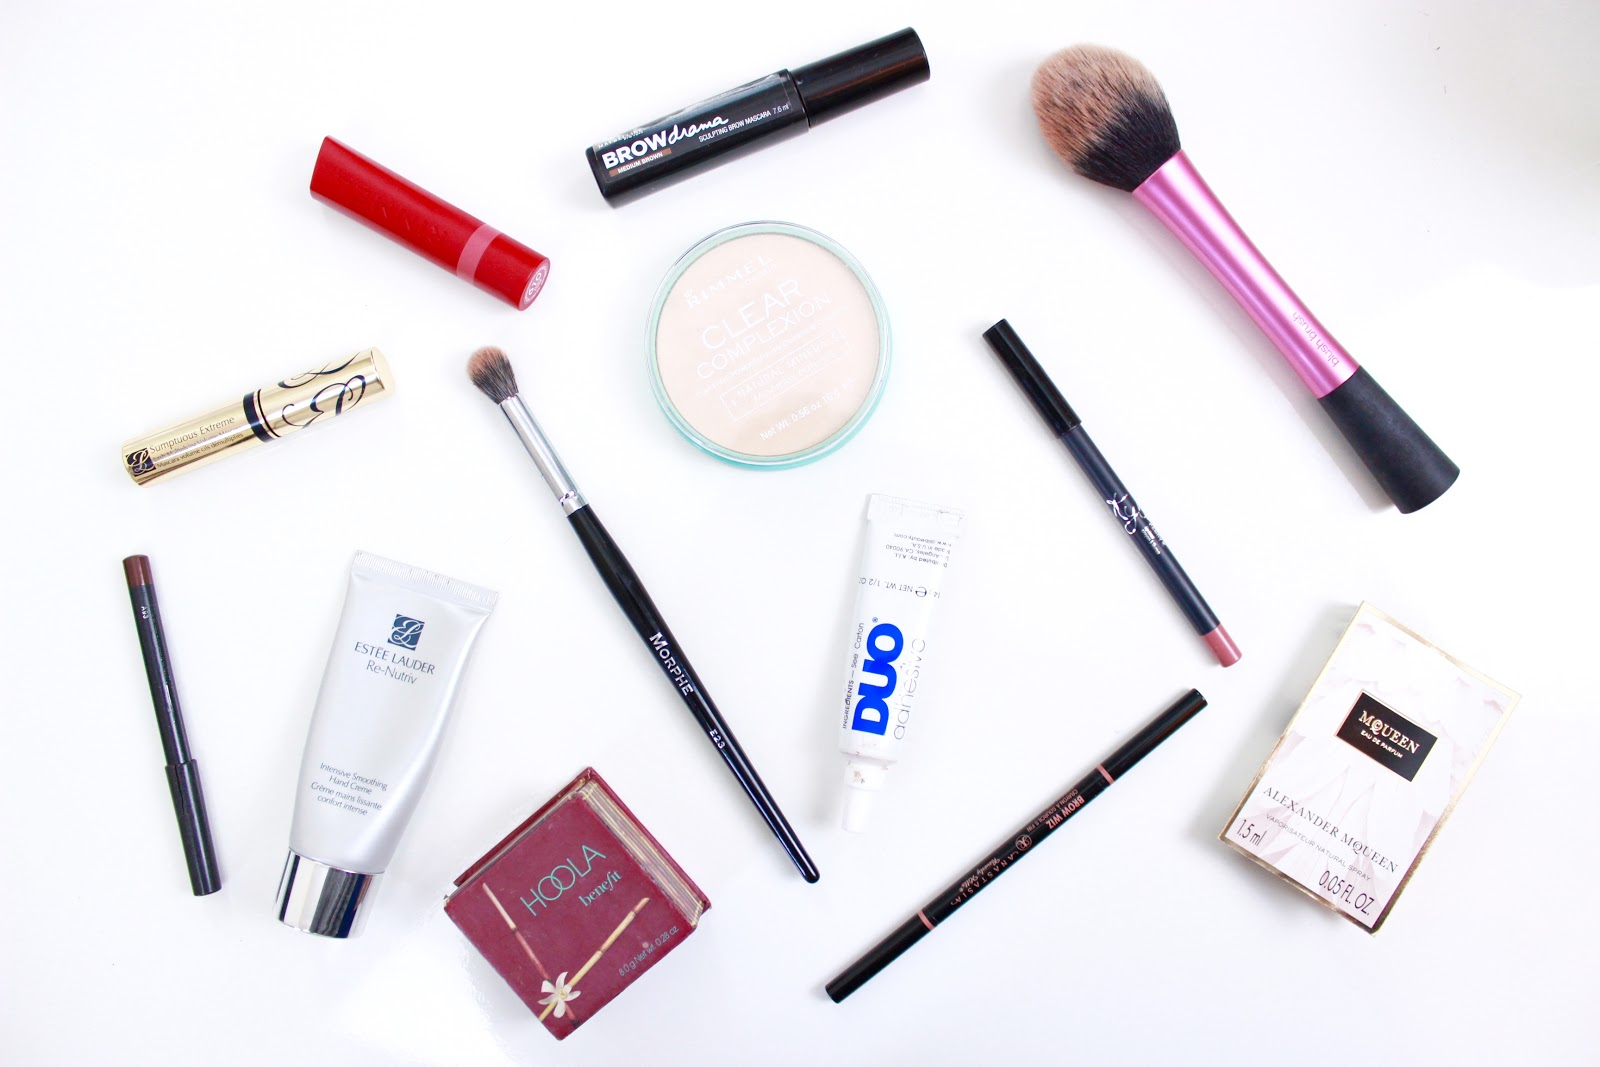 Whats inside my makeup bag